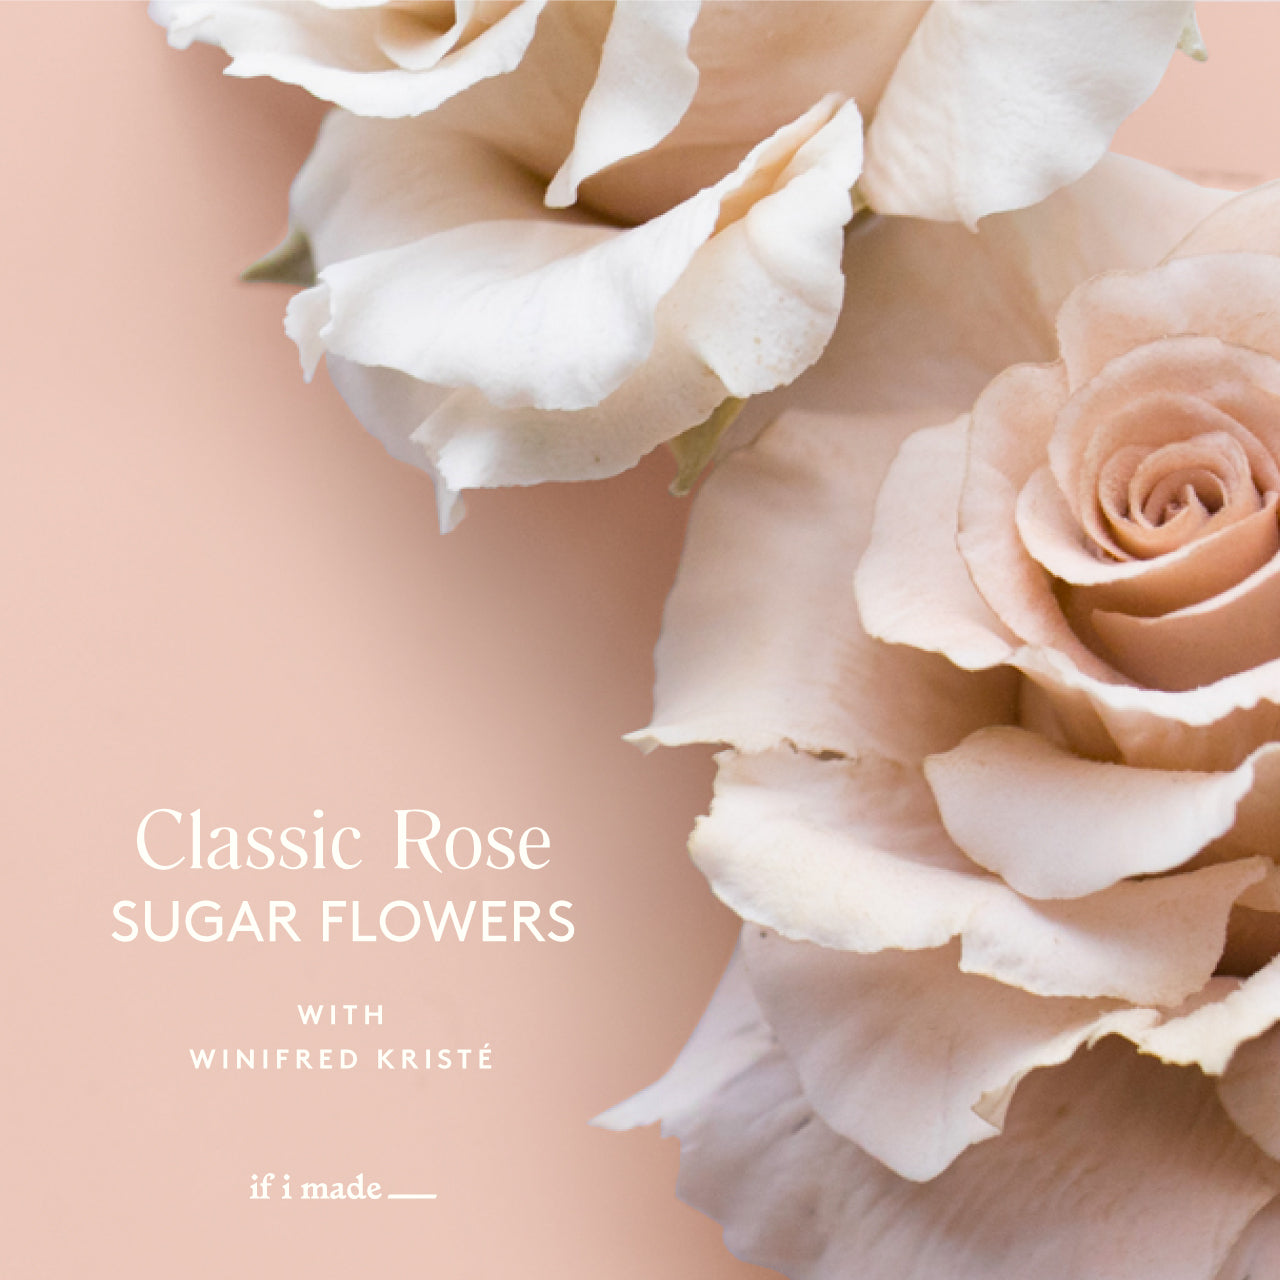 Sale Payment Plan: Classic Rose with Winifred Kristé Cake